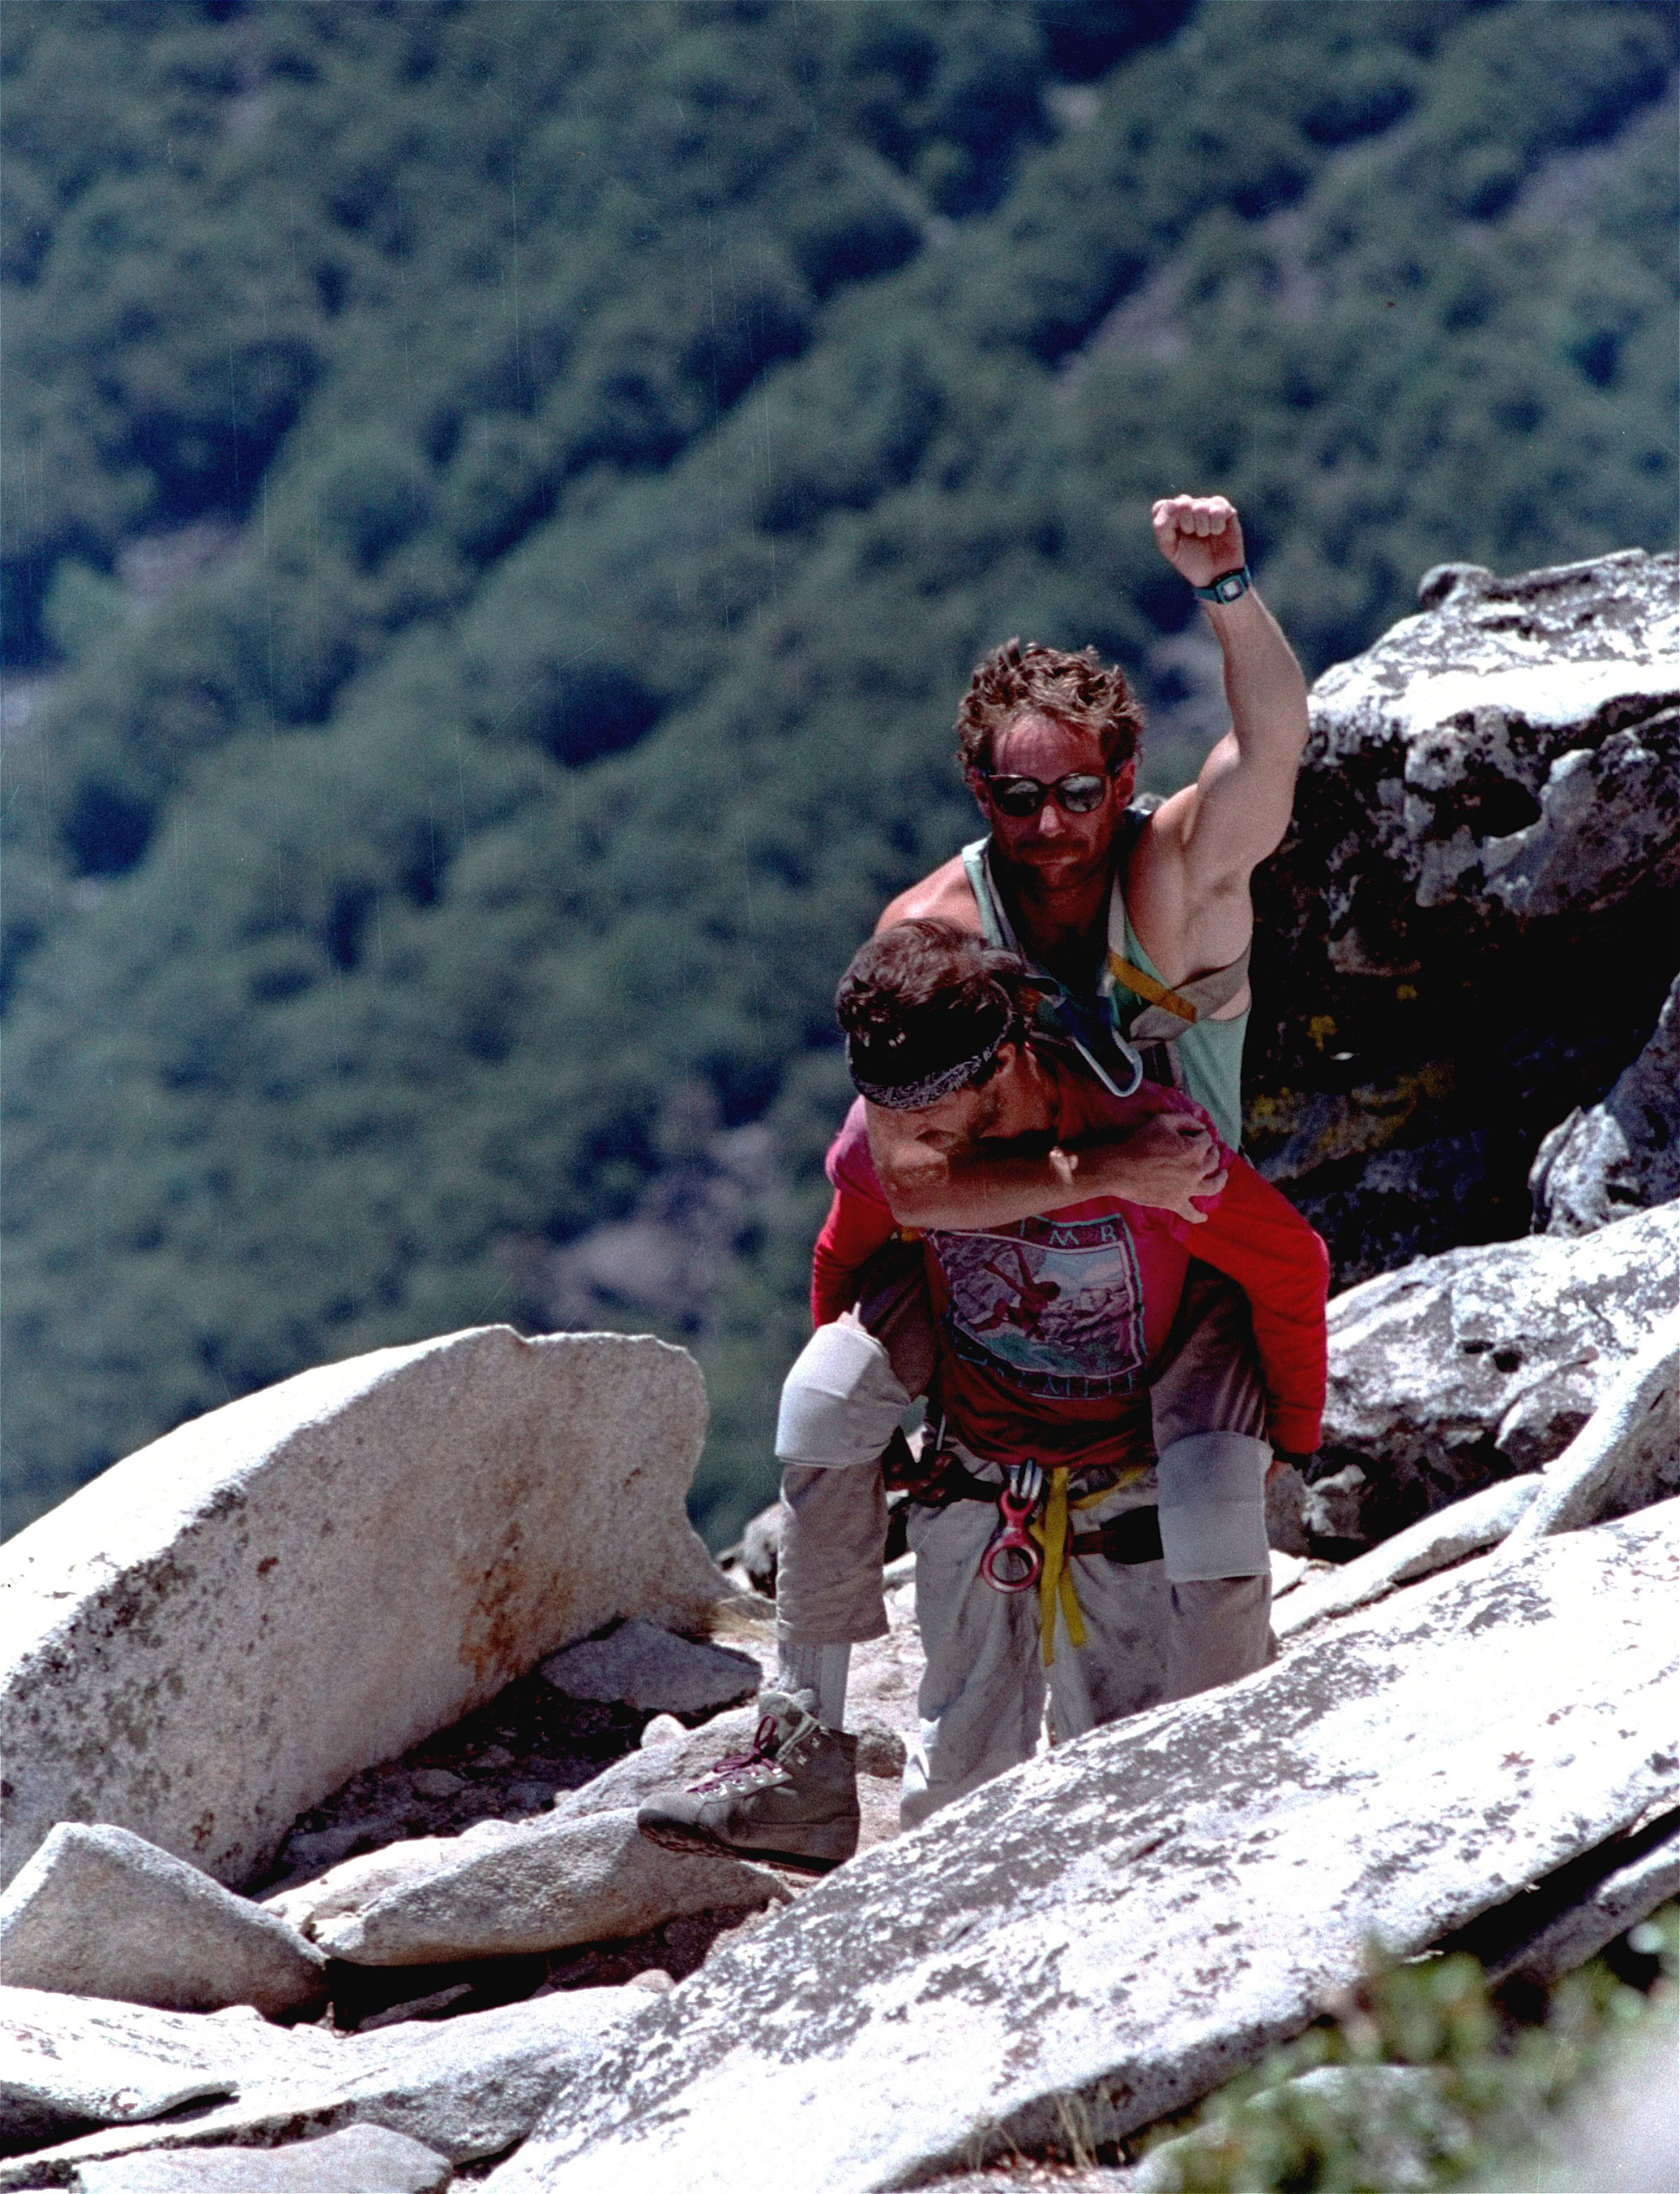 1989: First paraplegic ascent                                                              Mark Wellman, a climber who had minimal use of his legs, ascended El Capitan in July 1989. Wellman's climbing partner, Mike Corbett, scaled ahead to set the climbing ropes in rock and Wellman followed, pulling himself up the ropes with a T-bar lift device.